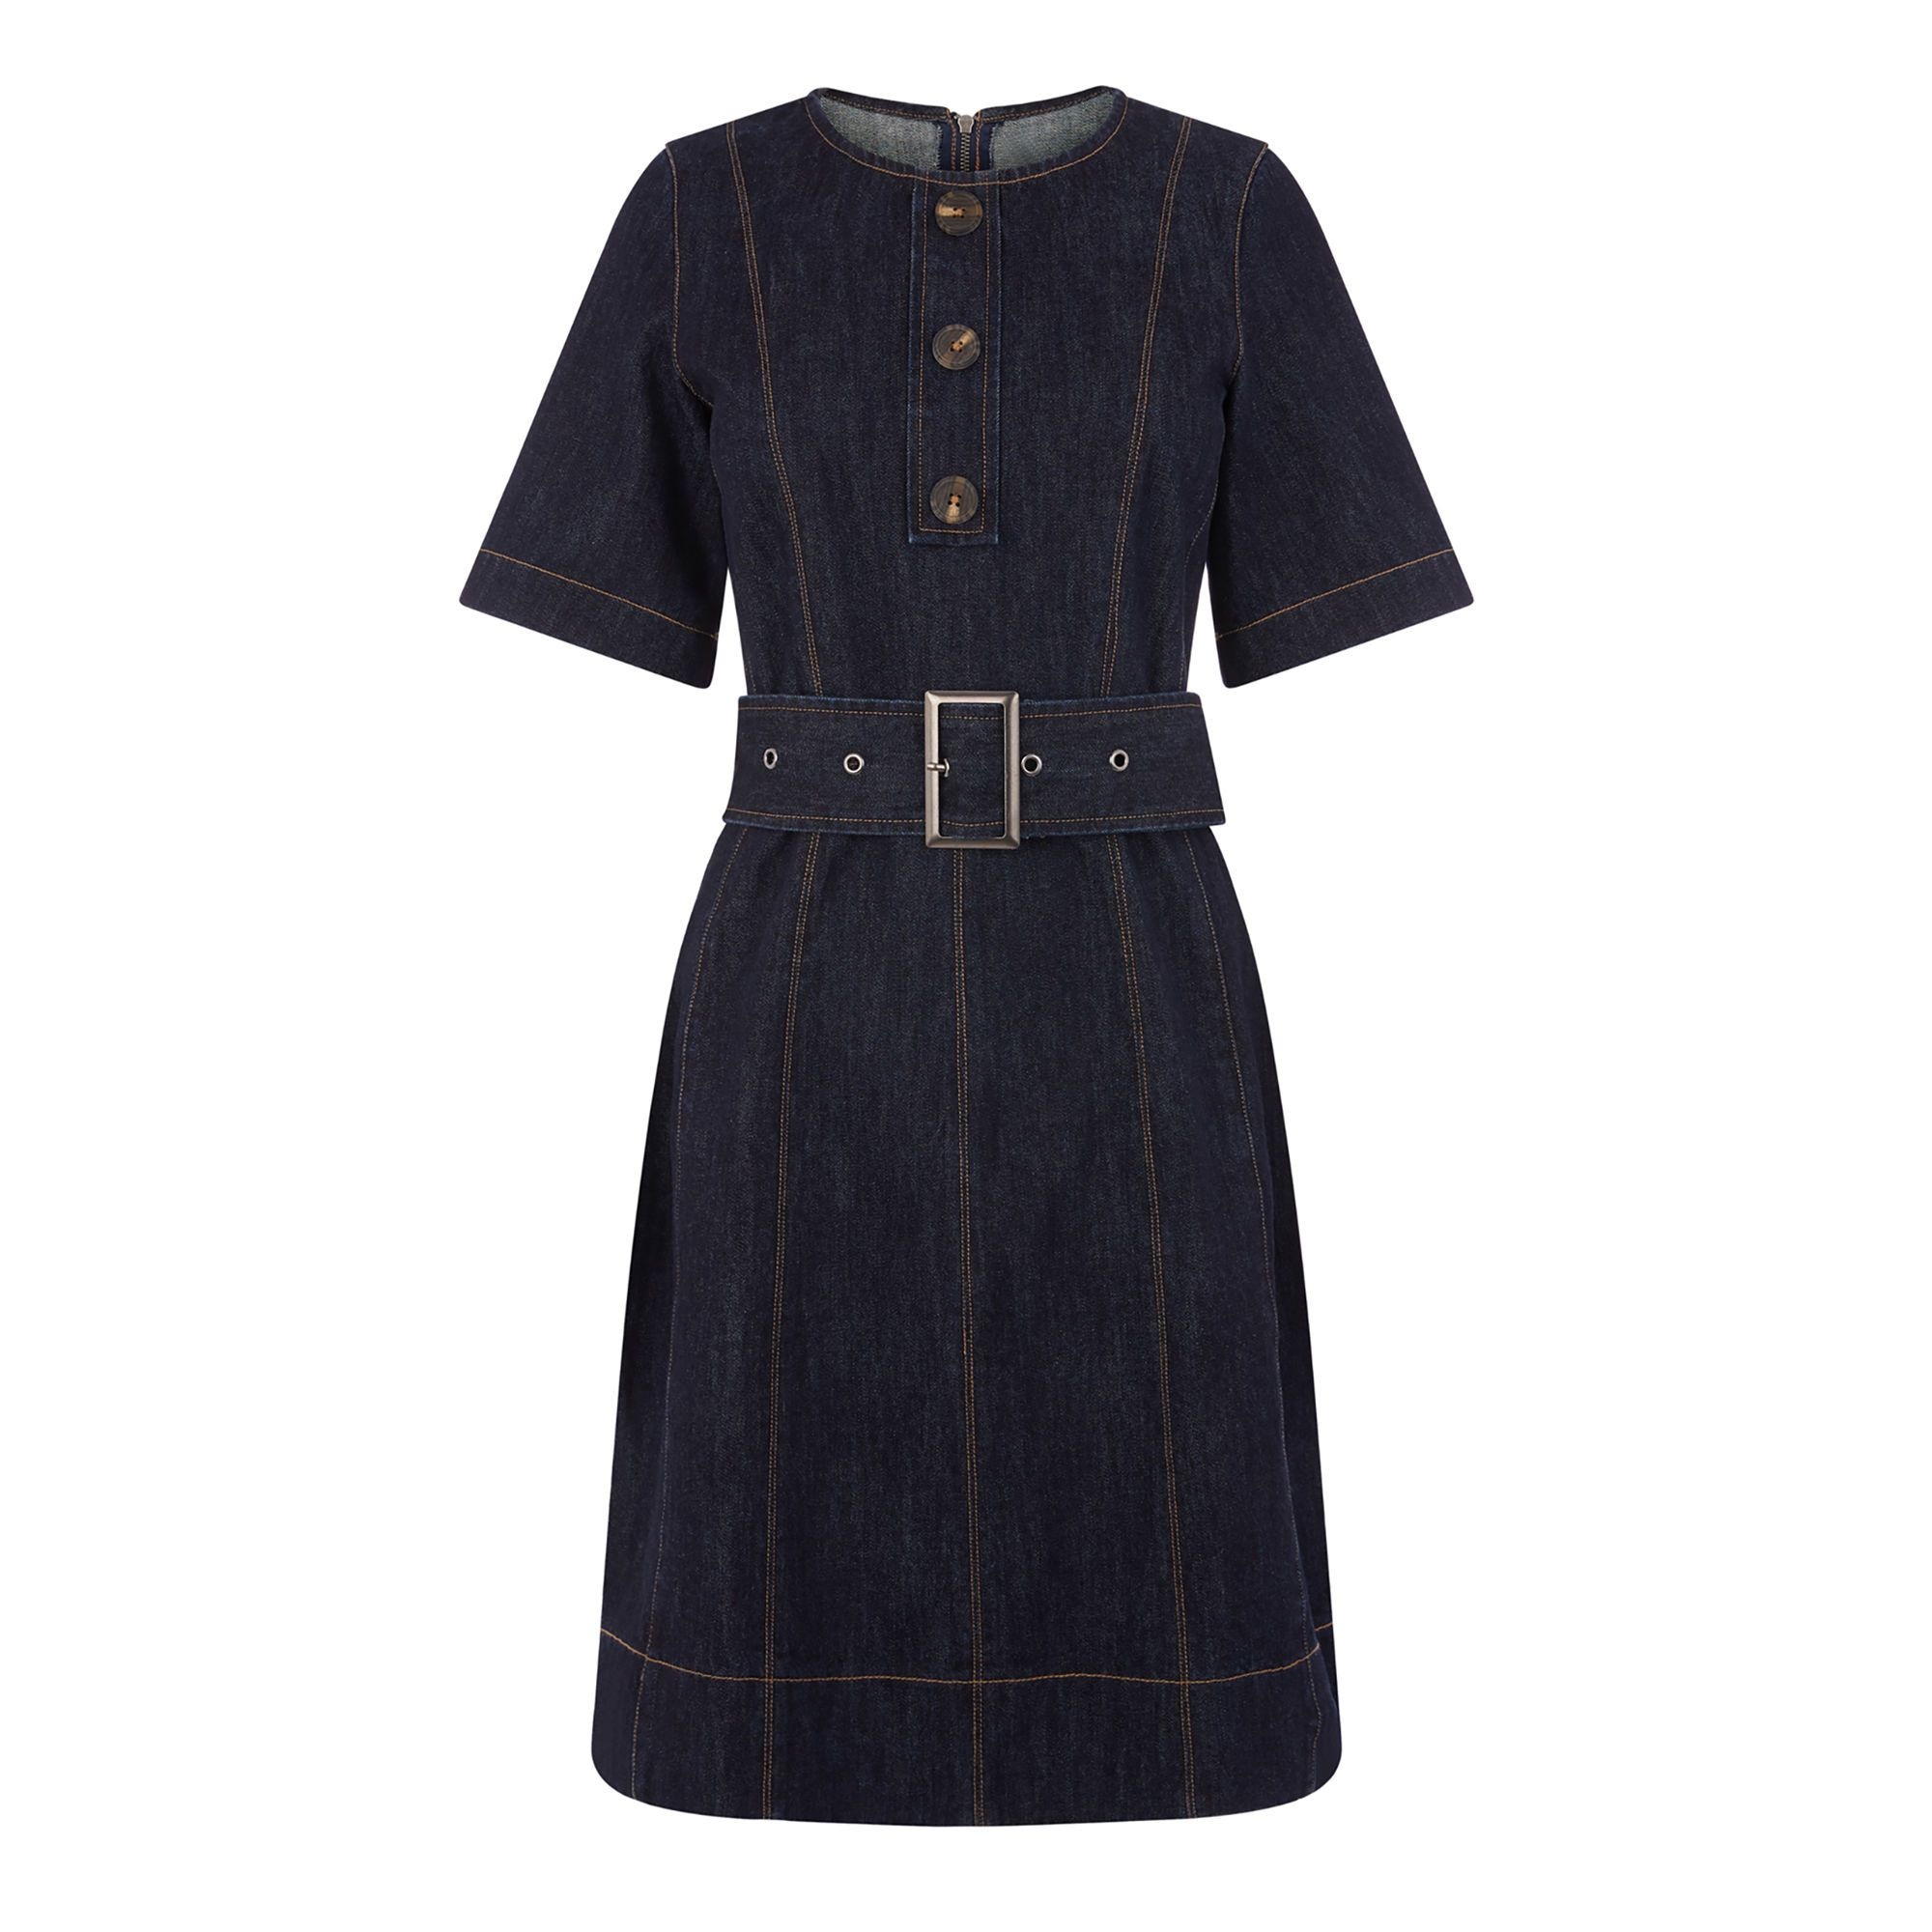 52527866a47 Chicwe Women s Luxury Raglan Sleeves Plus Size Maxi Dress with Belt   Wow!  I love this. Check it out now!   Plus size dresses